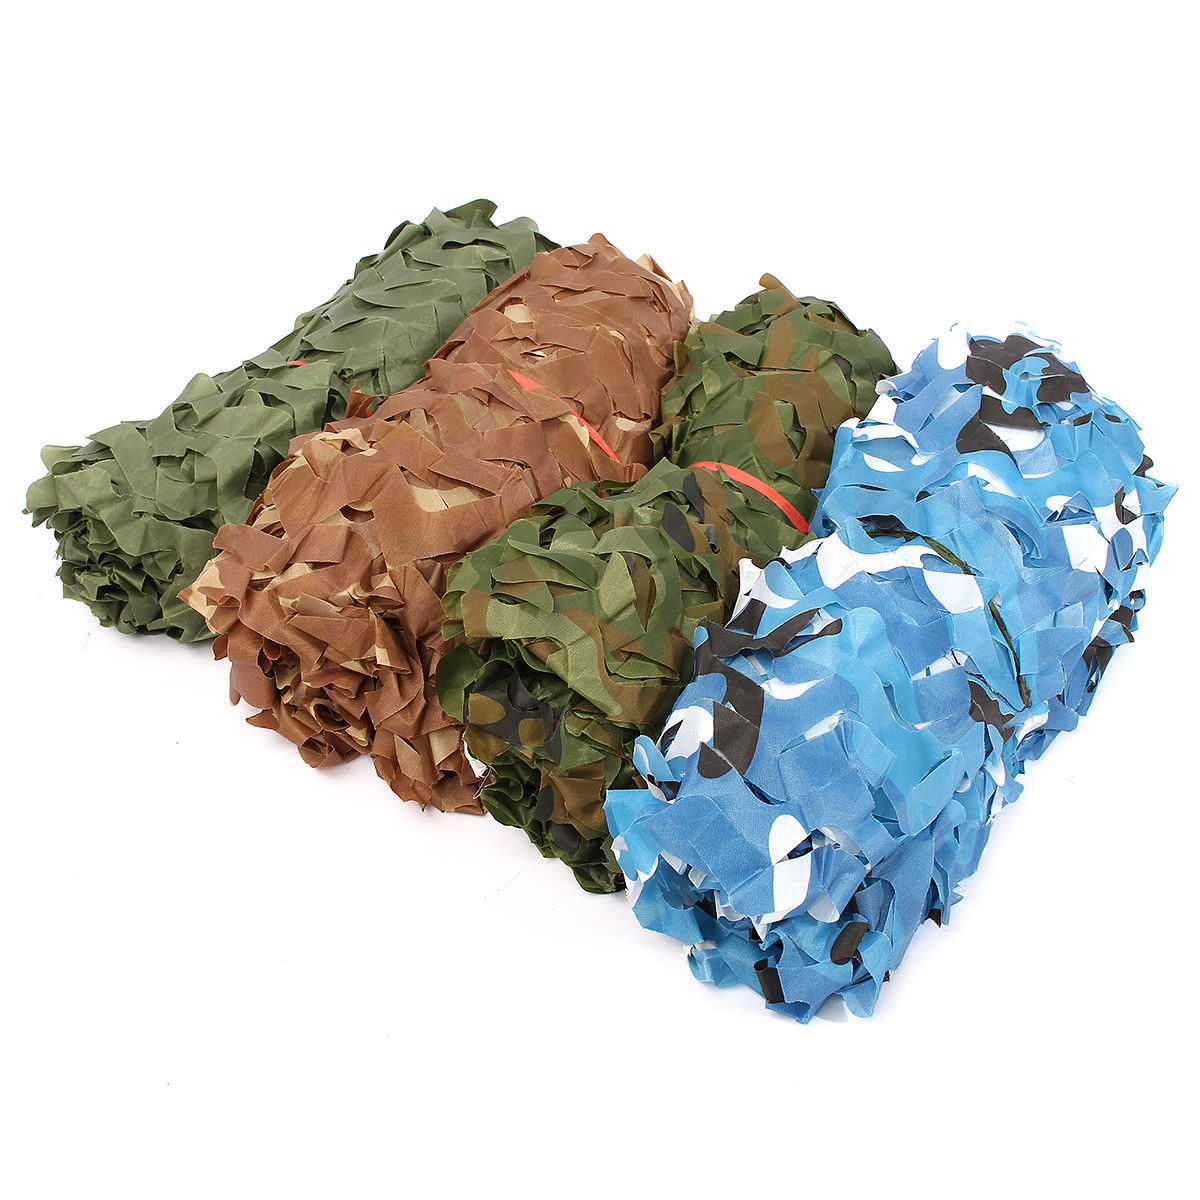 Hunting Military Camouflage Nets Woodland Army Camo netting Camping Sun ShelterTent Shade sun shelter 3*5M 8mx8m woodland camouflage netting military army camo hunting hide camp cover net outdoor camping sun shelter